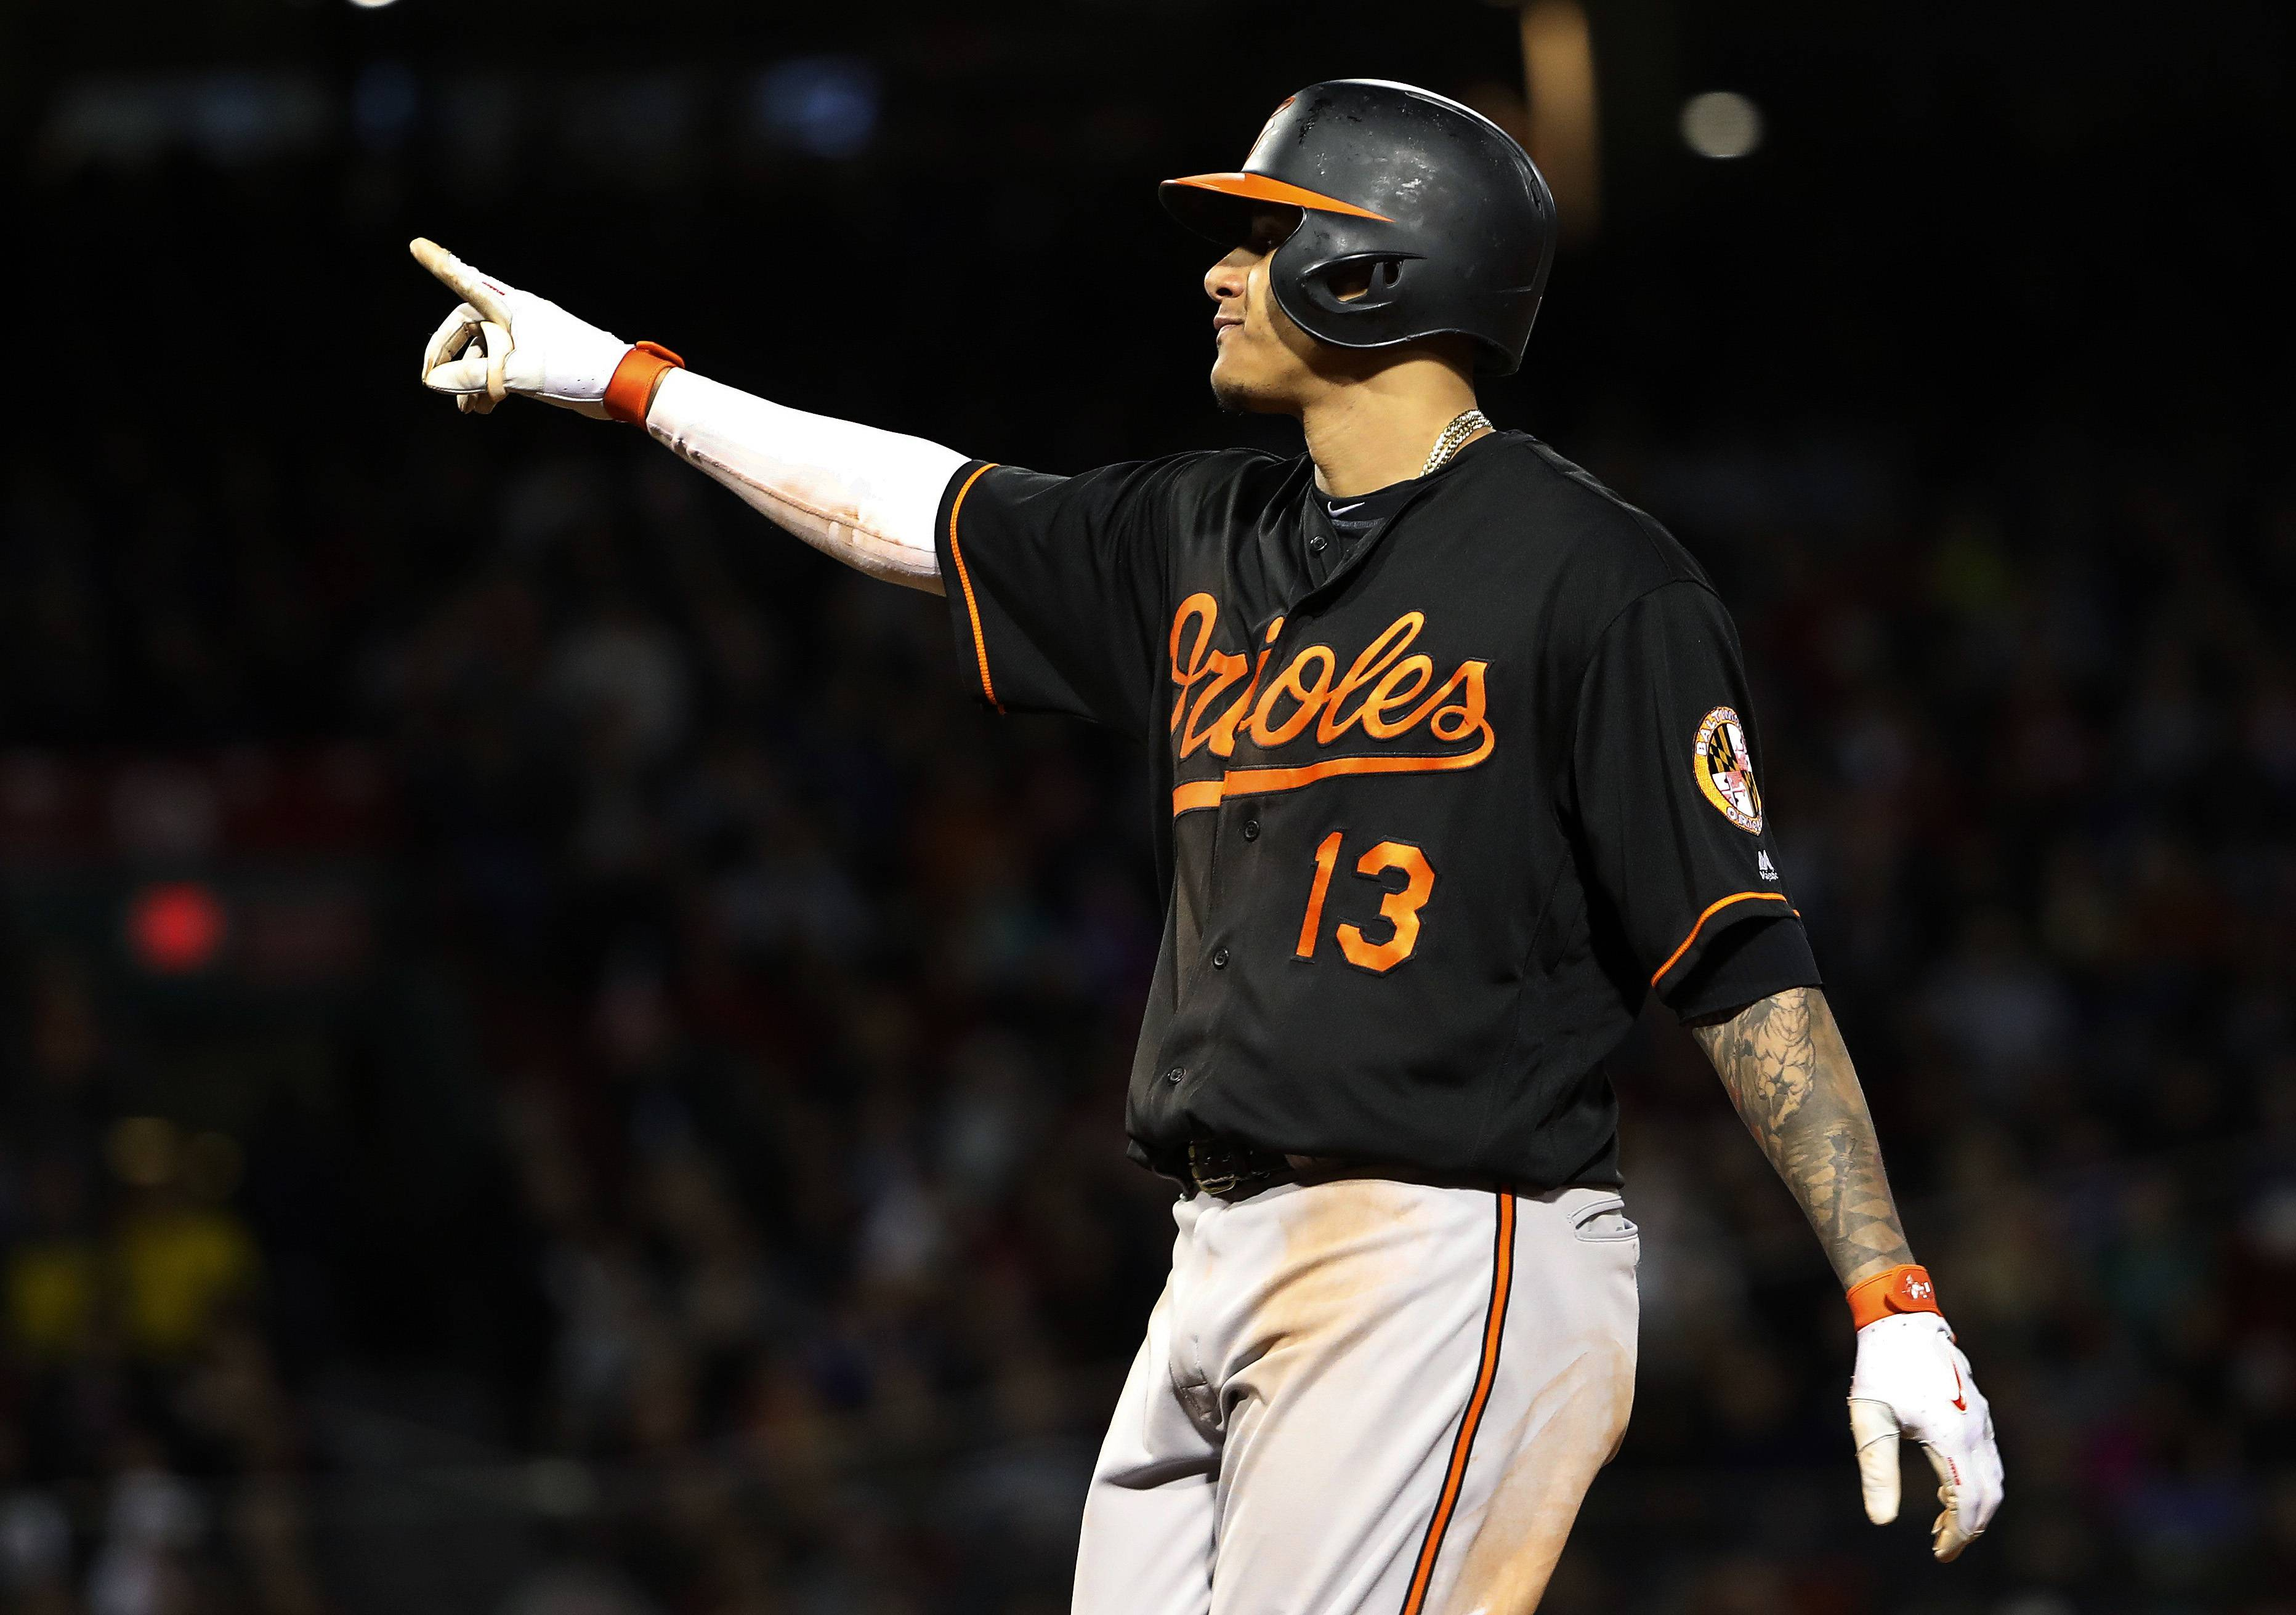 Baltimore Orioles' Manny Machado points to a teammate who scored on a two-run single during the fourth inning of the team's baseball game against the Boston Red Sox at Fenway Park in Boston Friday, May 18, 2018.(AP Photo/Winslow Townson)